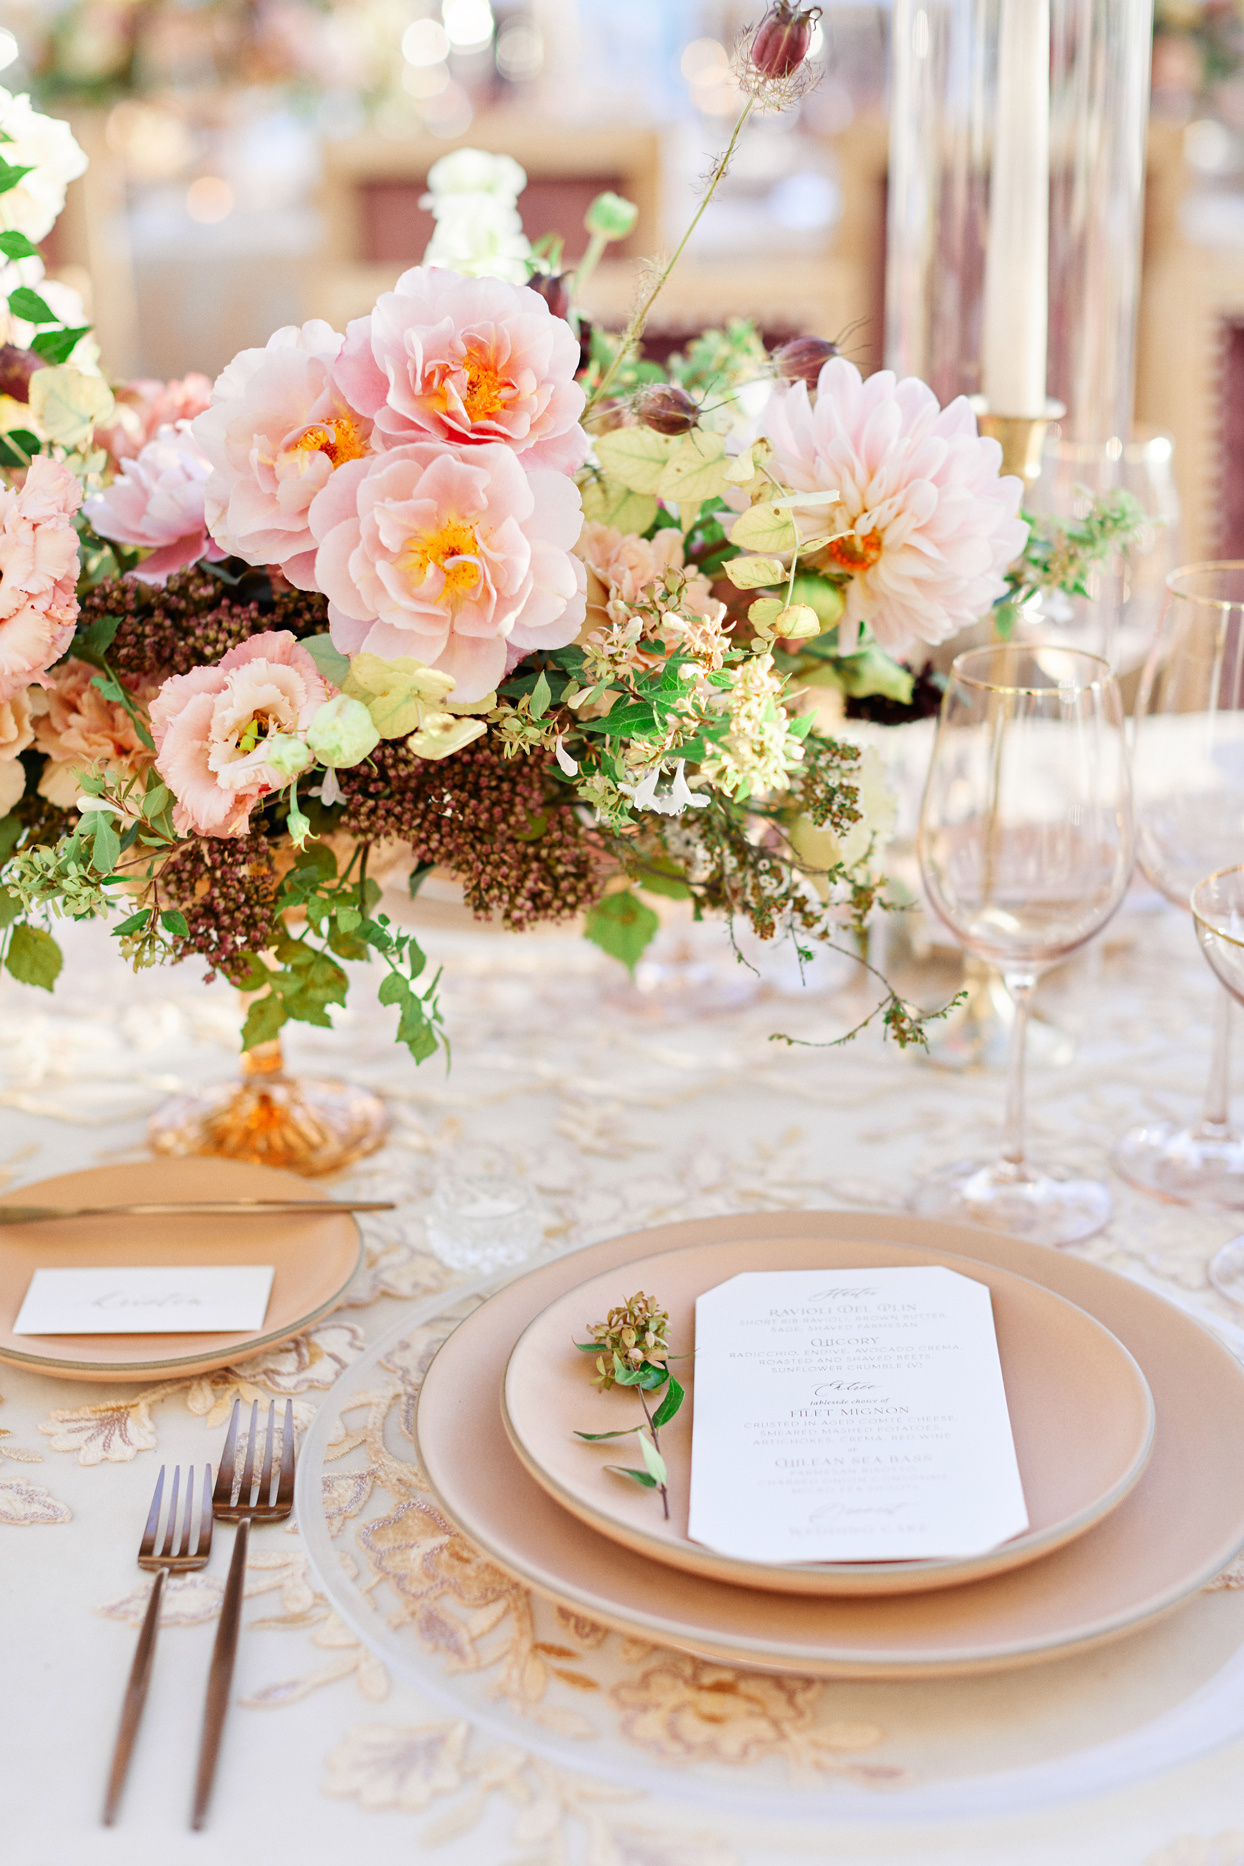 cream colored place setting with floral centerpieces